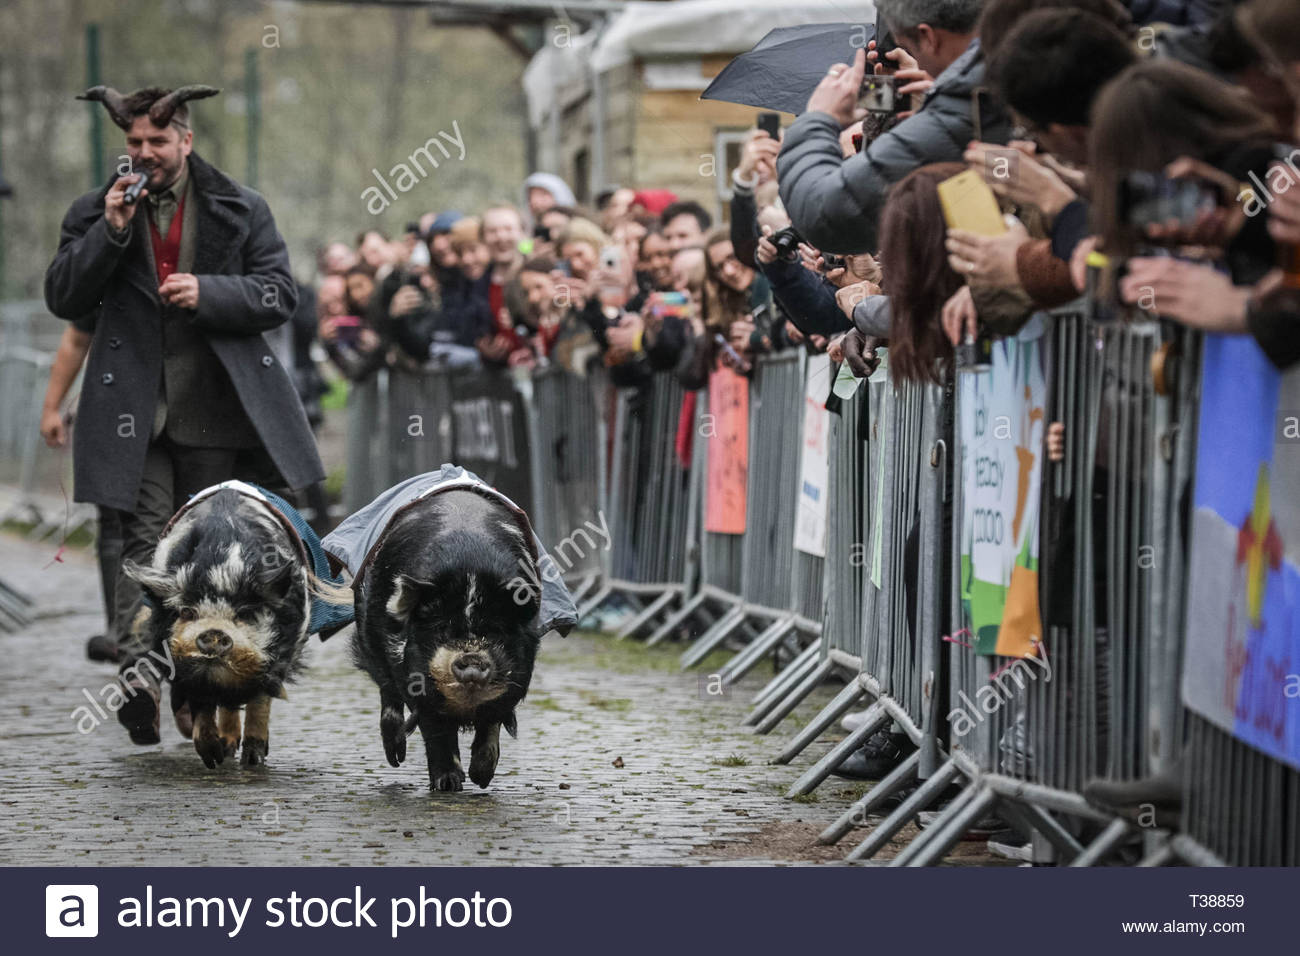 London, UK. 7th April 2019. Holmes and Watson Stoat pigs race before the main goat event at the 11th Annual Oxford vs Cambridge Goat Race at Spitalfields City Farm. Credit: Guy Corbishley/Alamy Live News - Stock Image